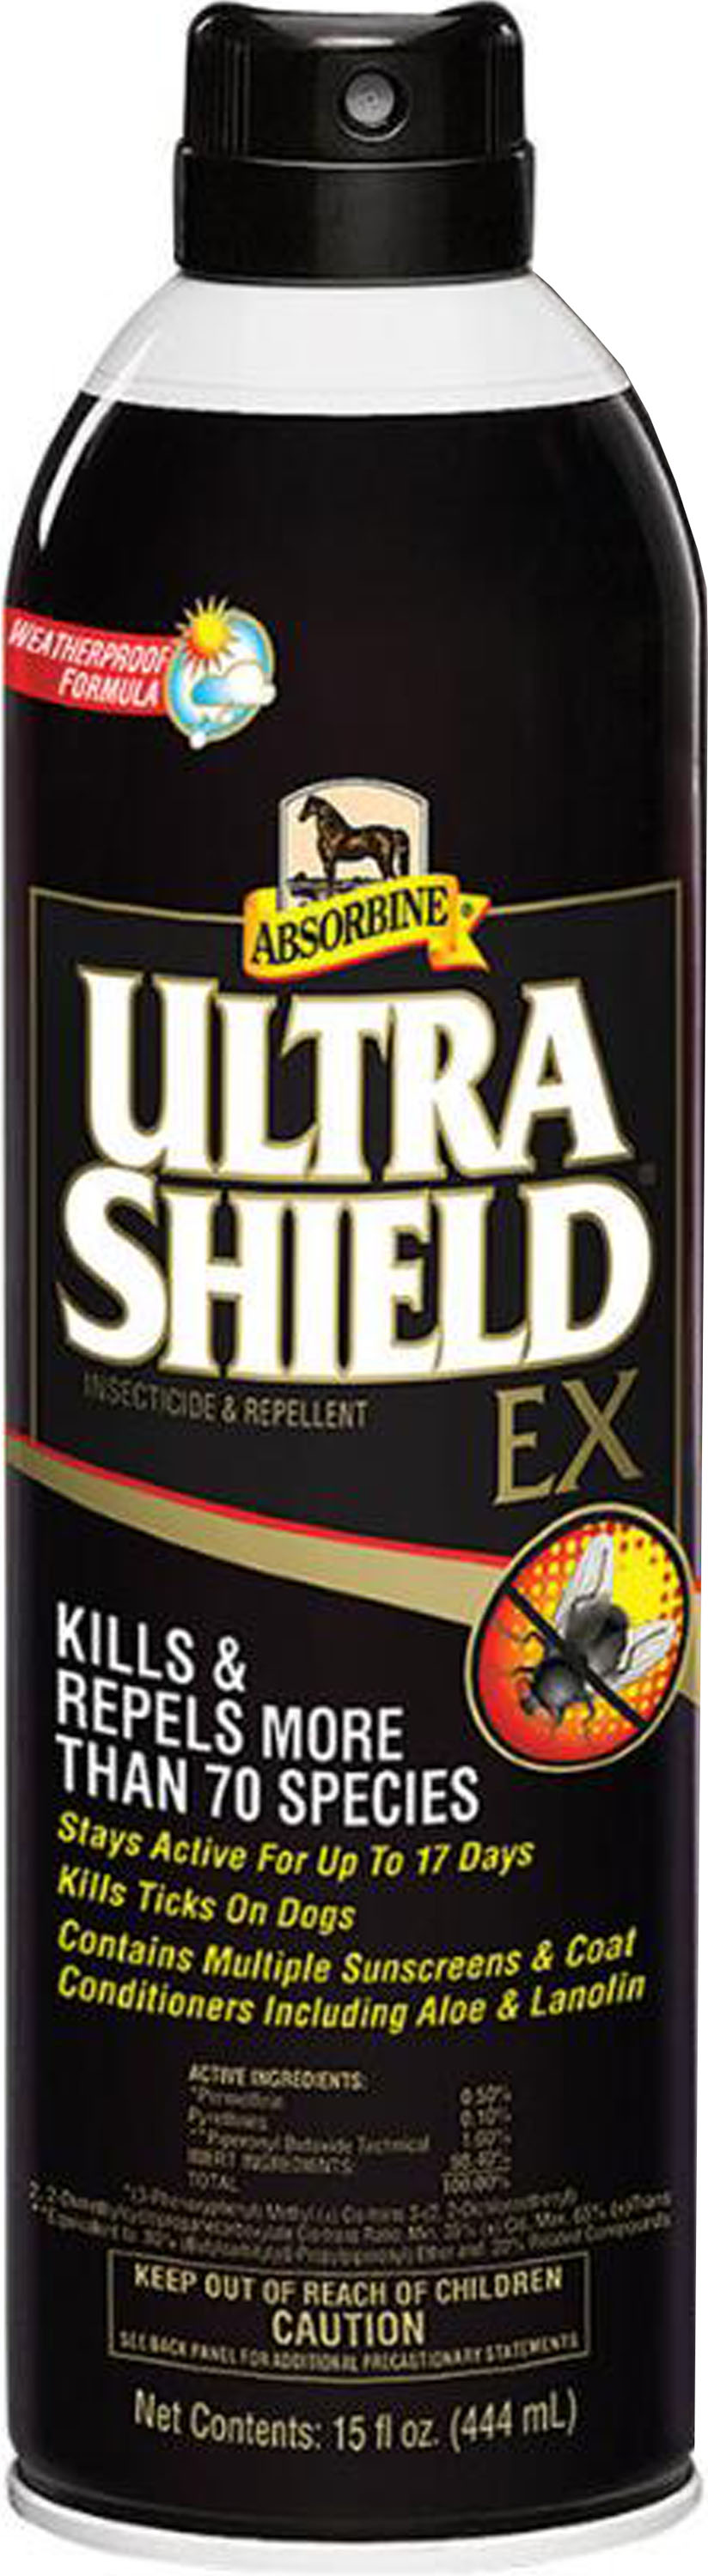 Absorbine Ultra Sheild Ex Insecticide & Repellent, 15-oz